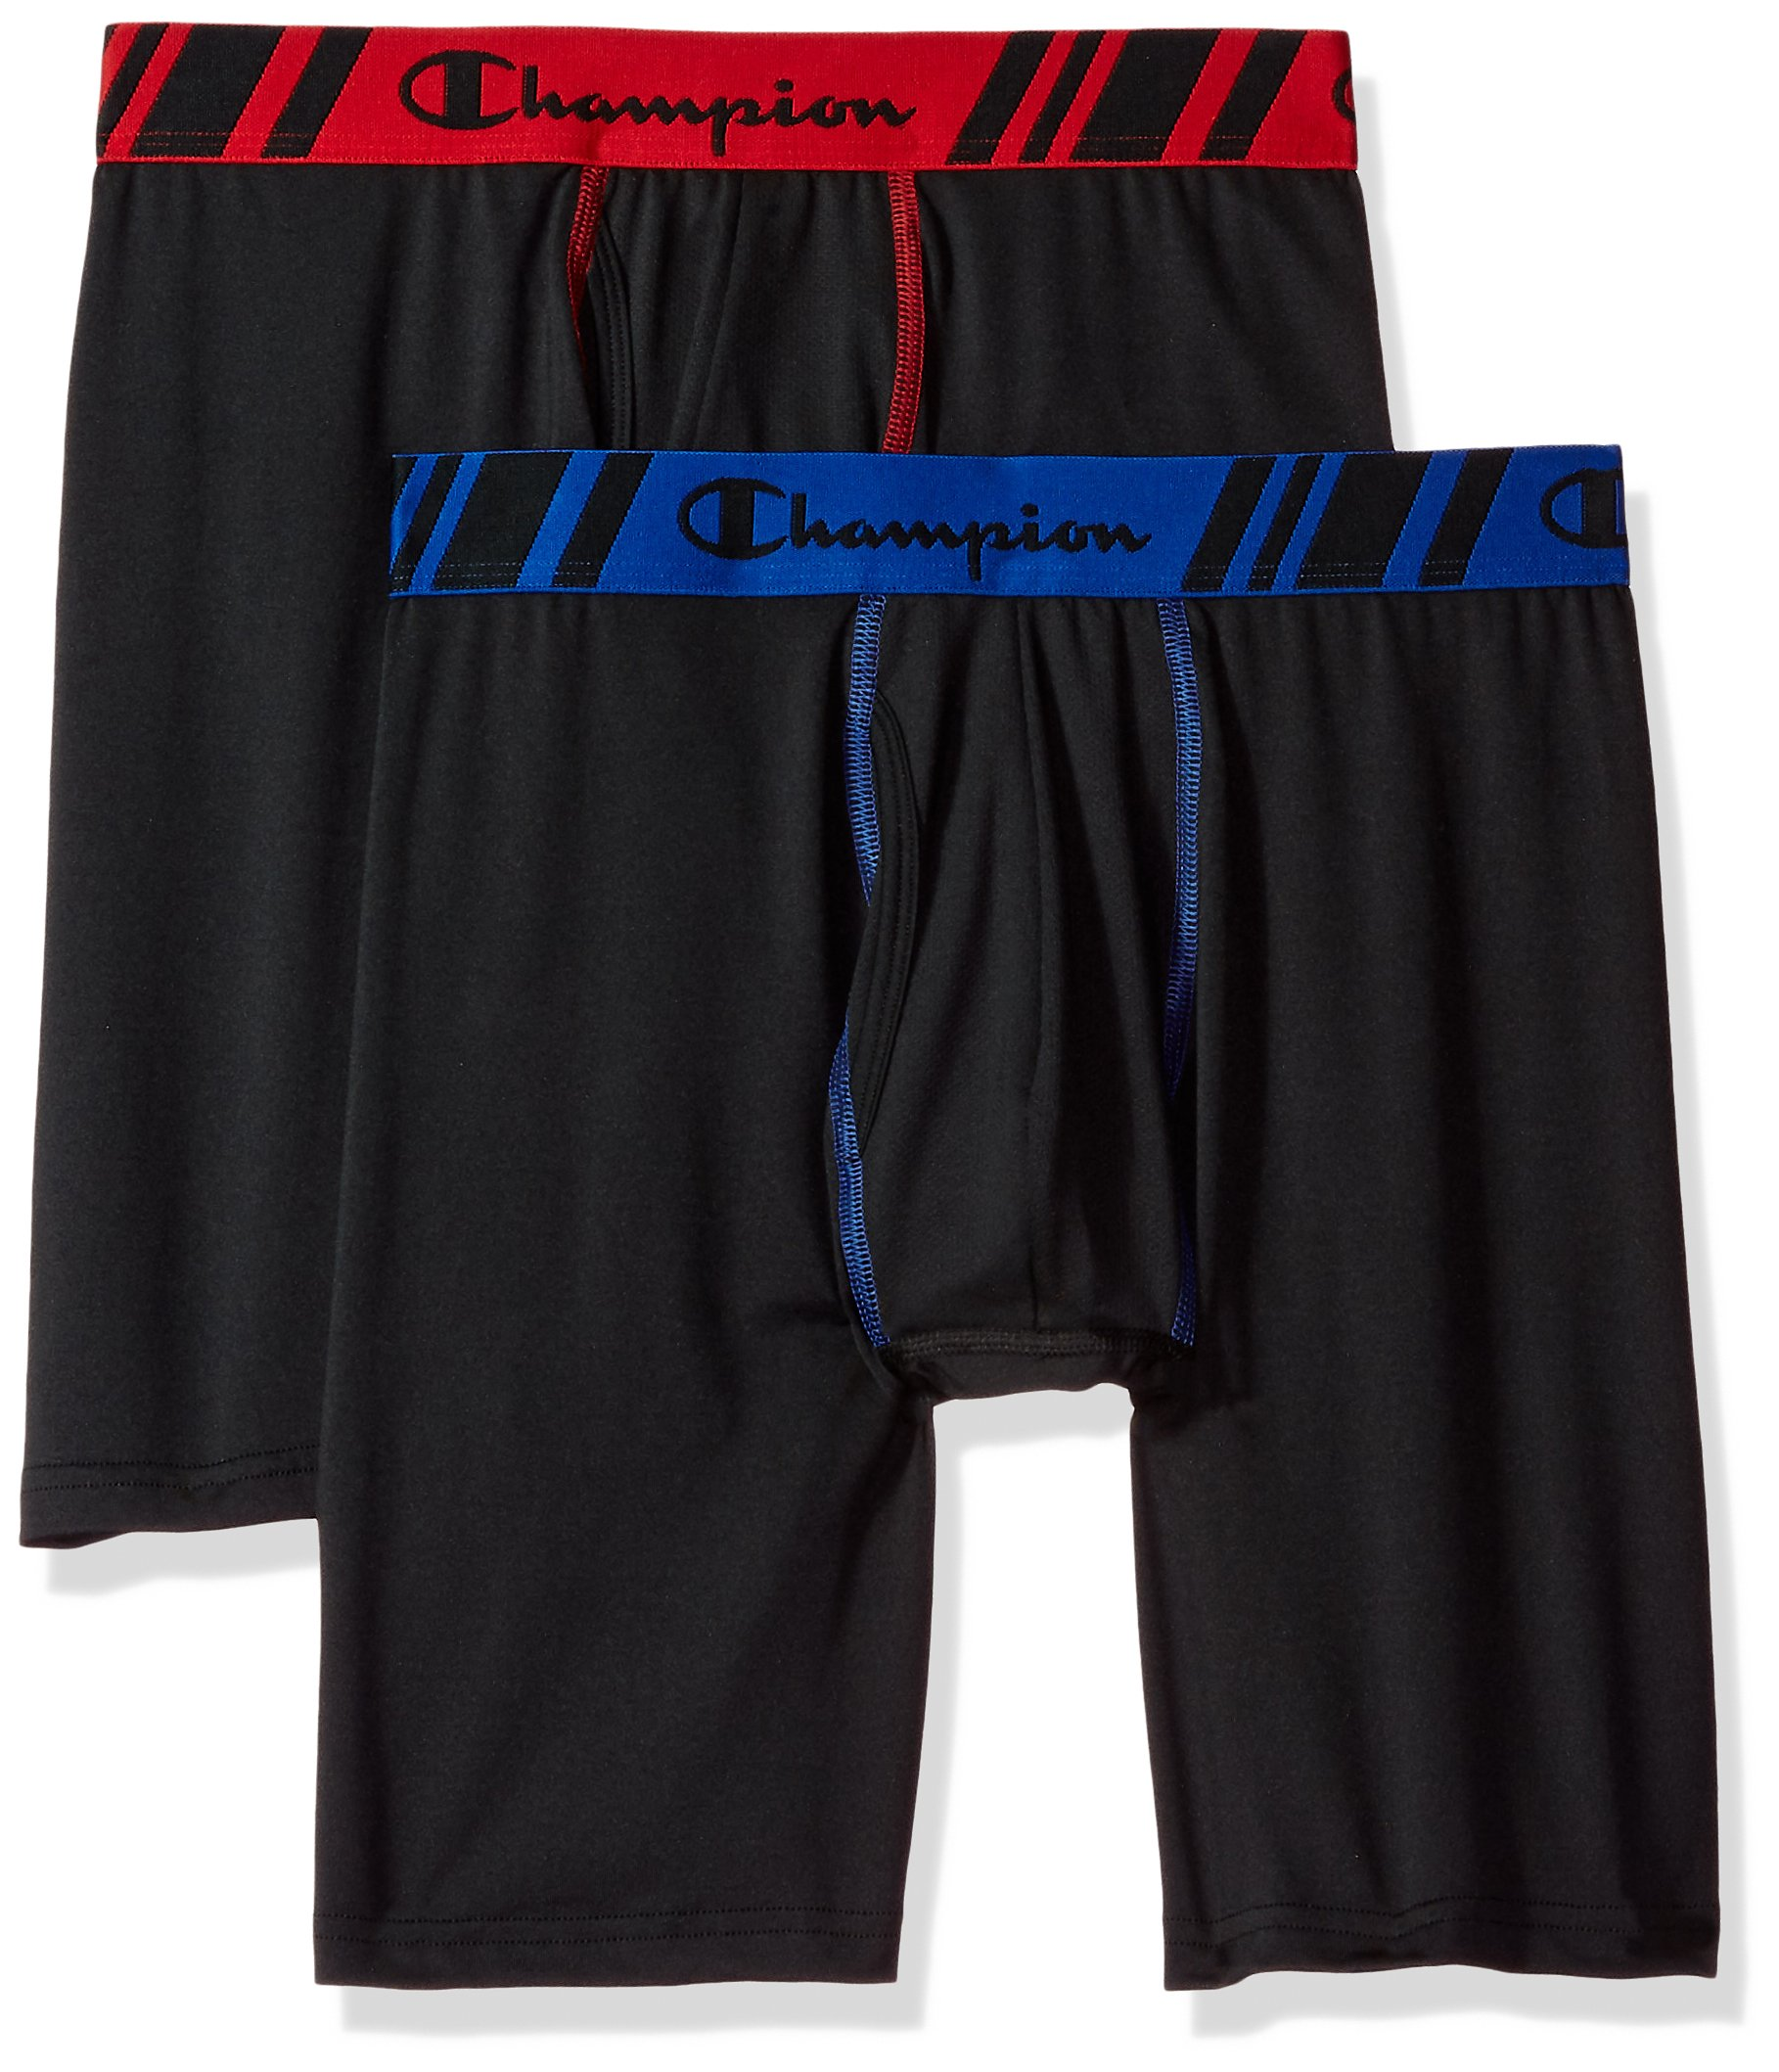 0adc2550df77 Best Rated in Men s Boxer Briefs   Helpful Customer Reviews - Amazon.com